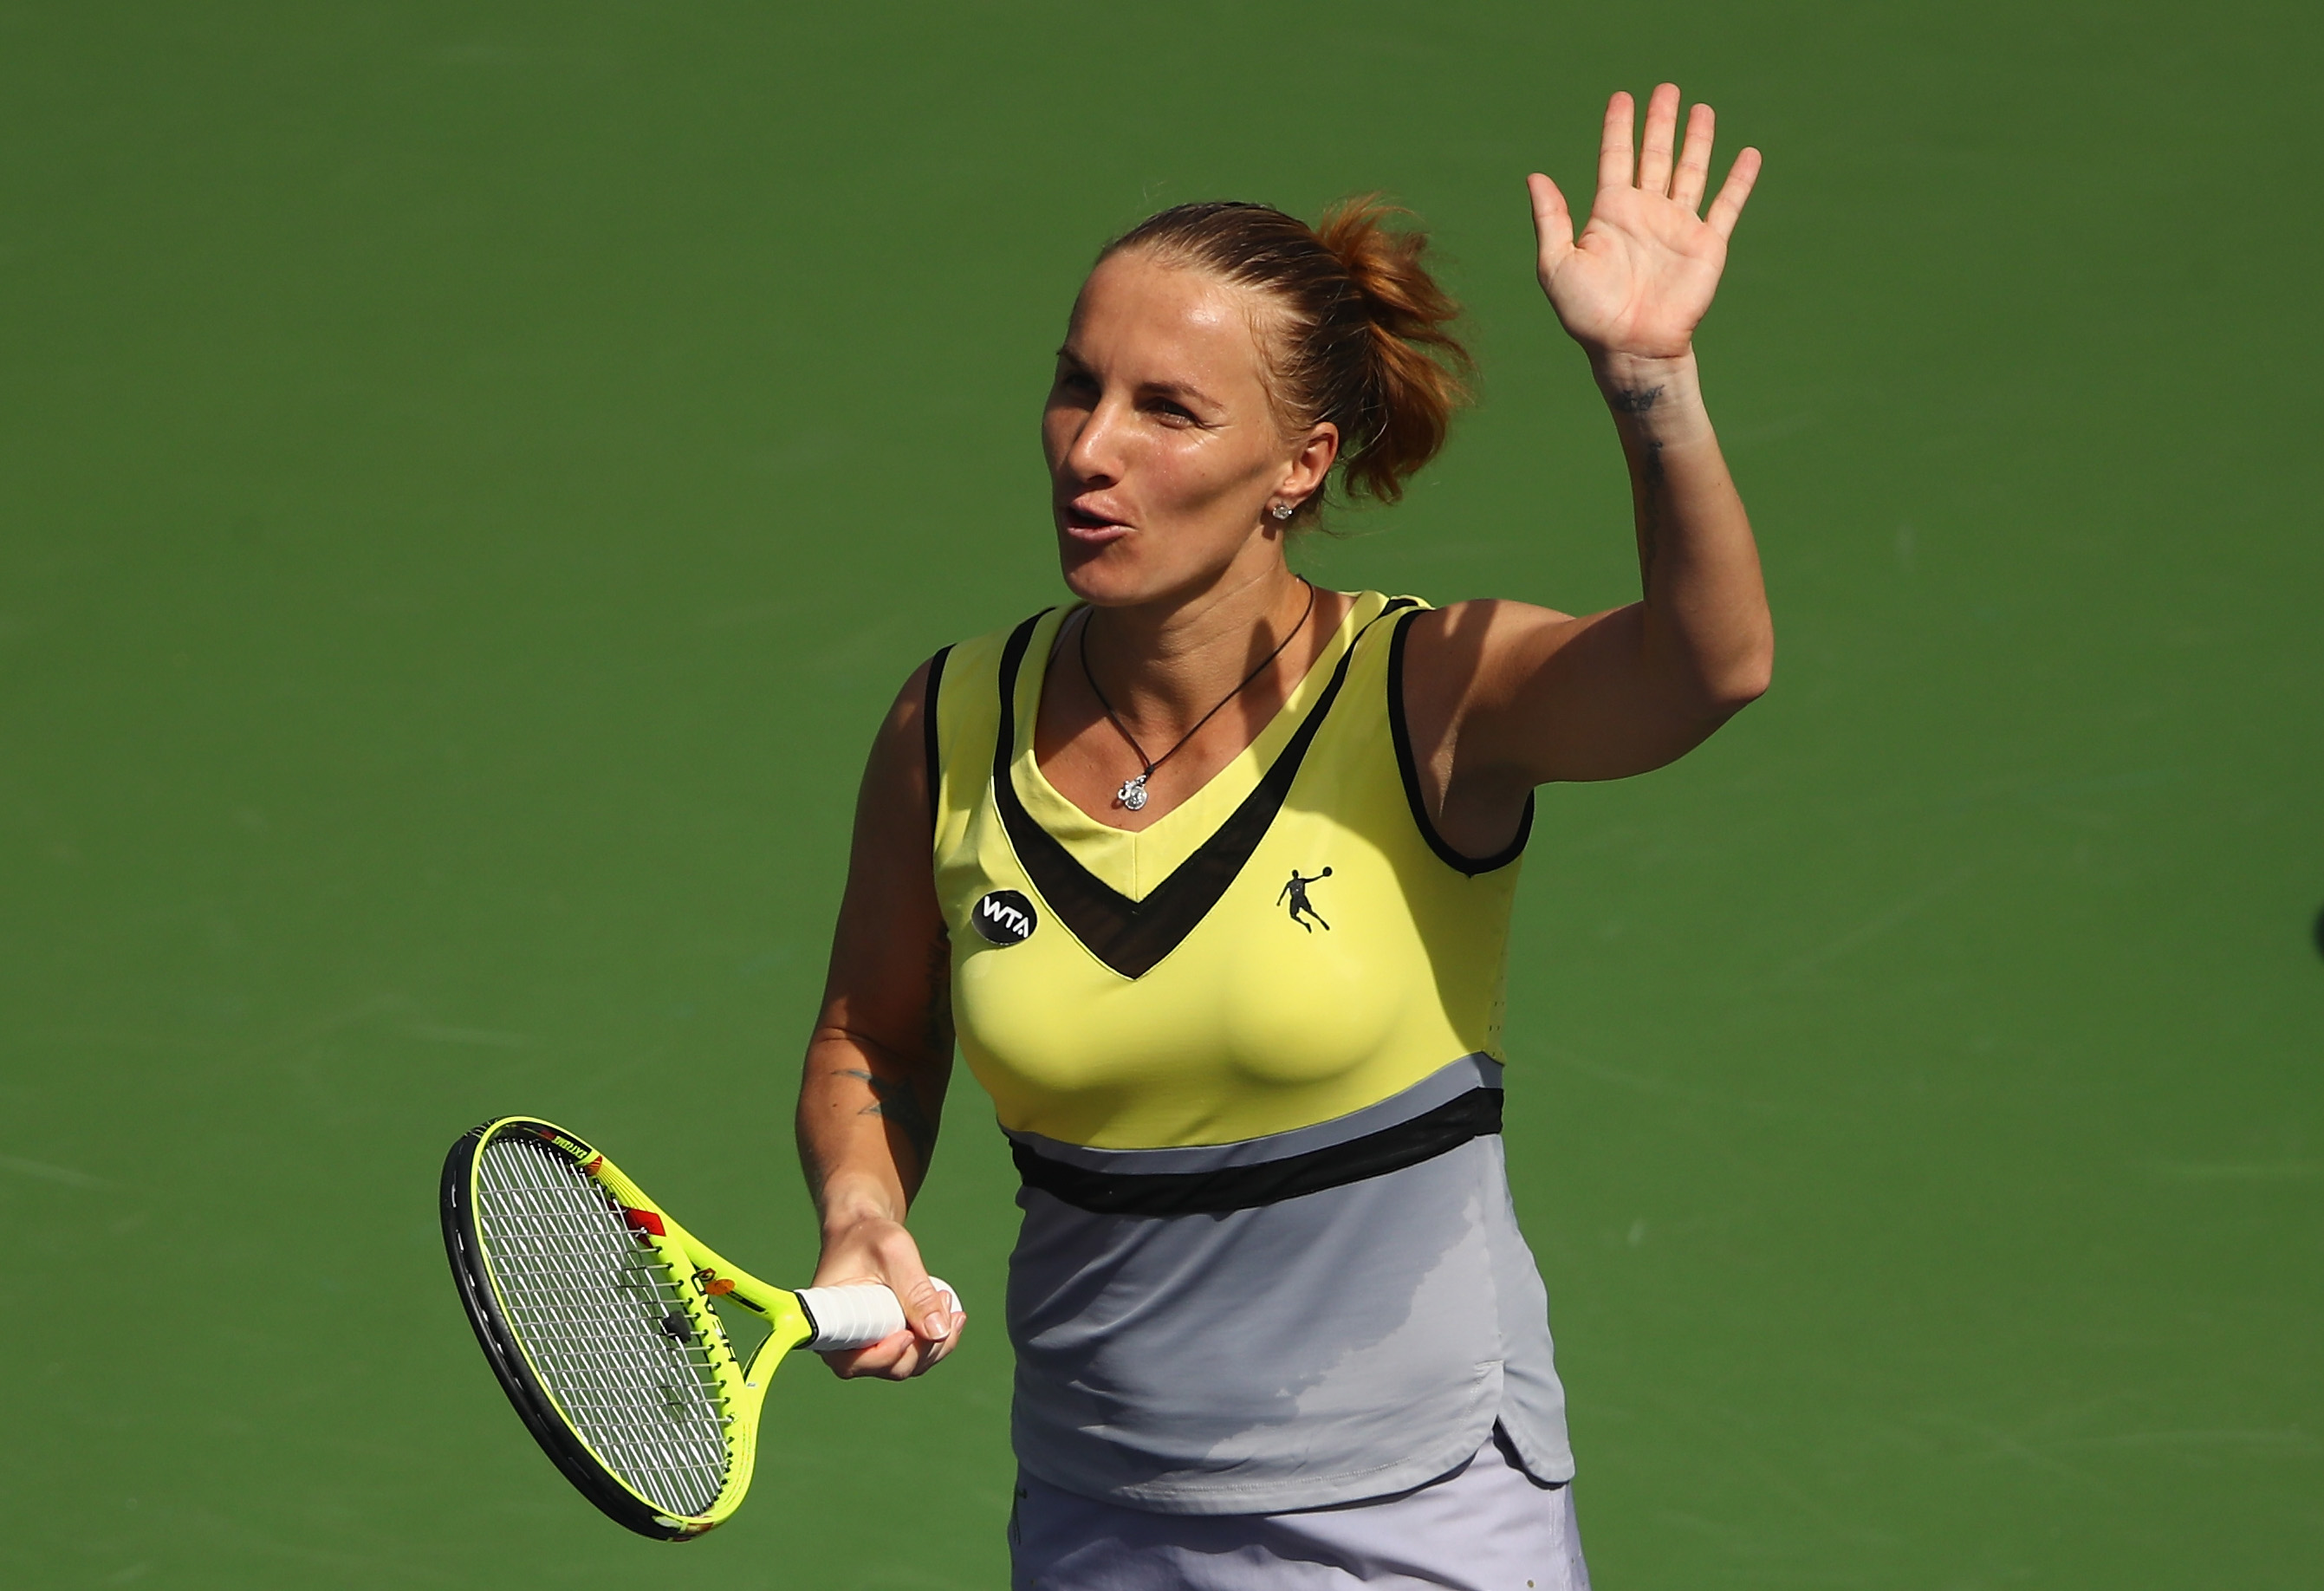 INDIAN WELLS, CA - MARCH 15: Svetlana Kuznetsova of Russia waves to the crowd after her straight set victory against Anastasia Pavlyuchenkova of Russia in the quarter final match during day ten of the BNP Paribas Open at Indian Wells Tennis Garden on March 15, 2017 in Indian Wells, California. (Photo by Clive Brunskill/Getty Images)